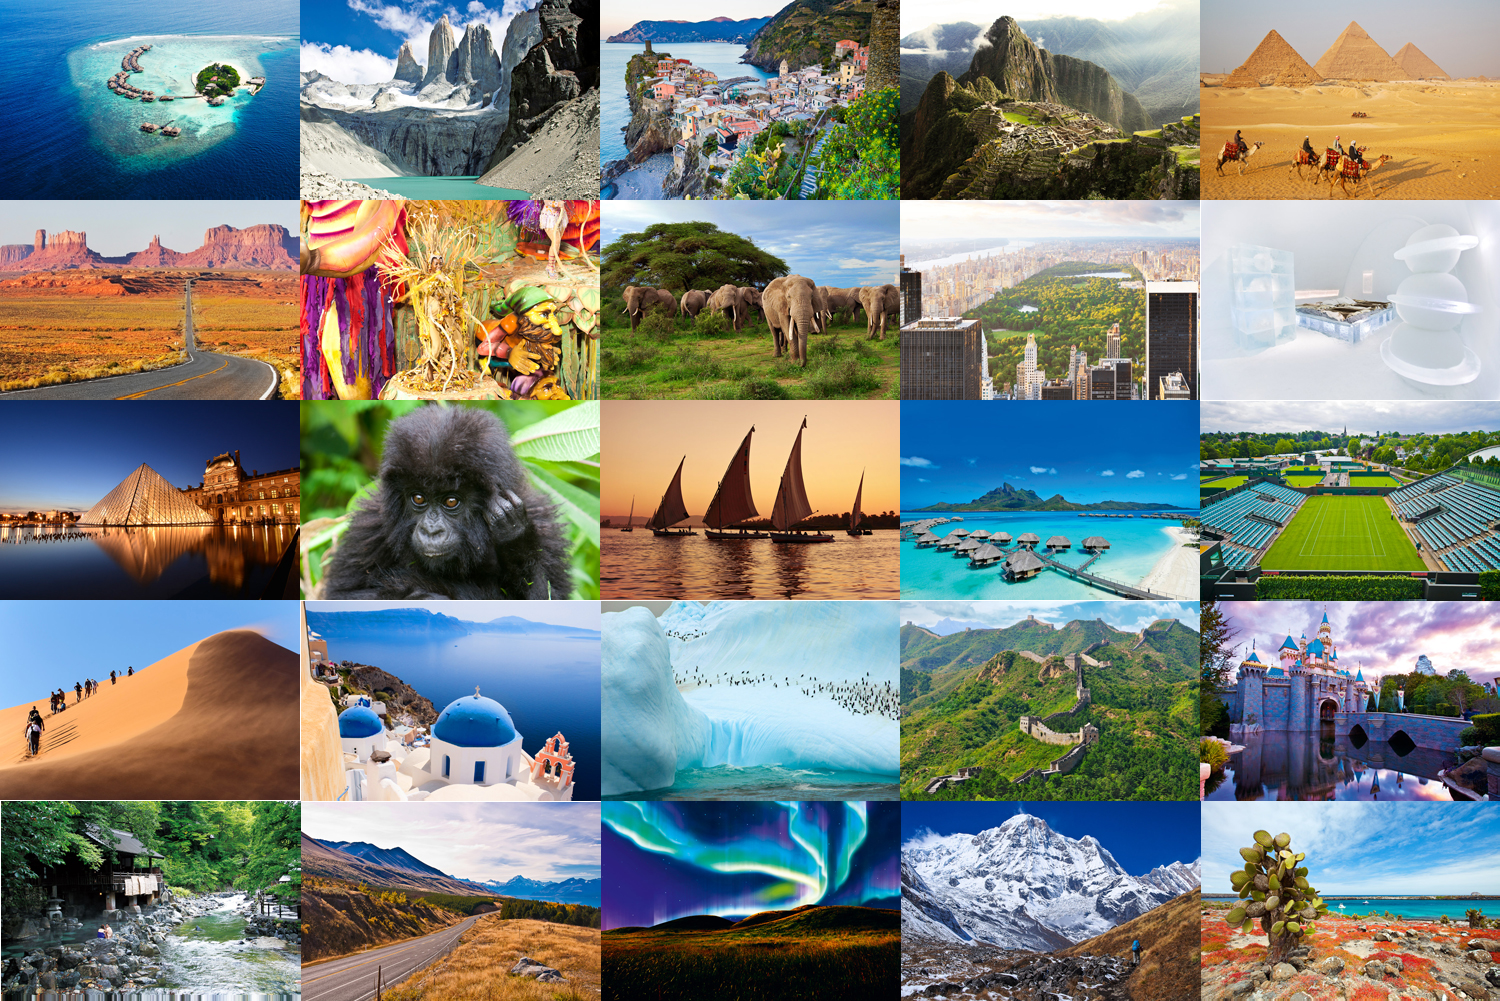 Discover the Majestic Destinations Worldwide with Your Family!